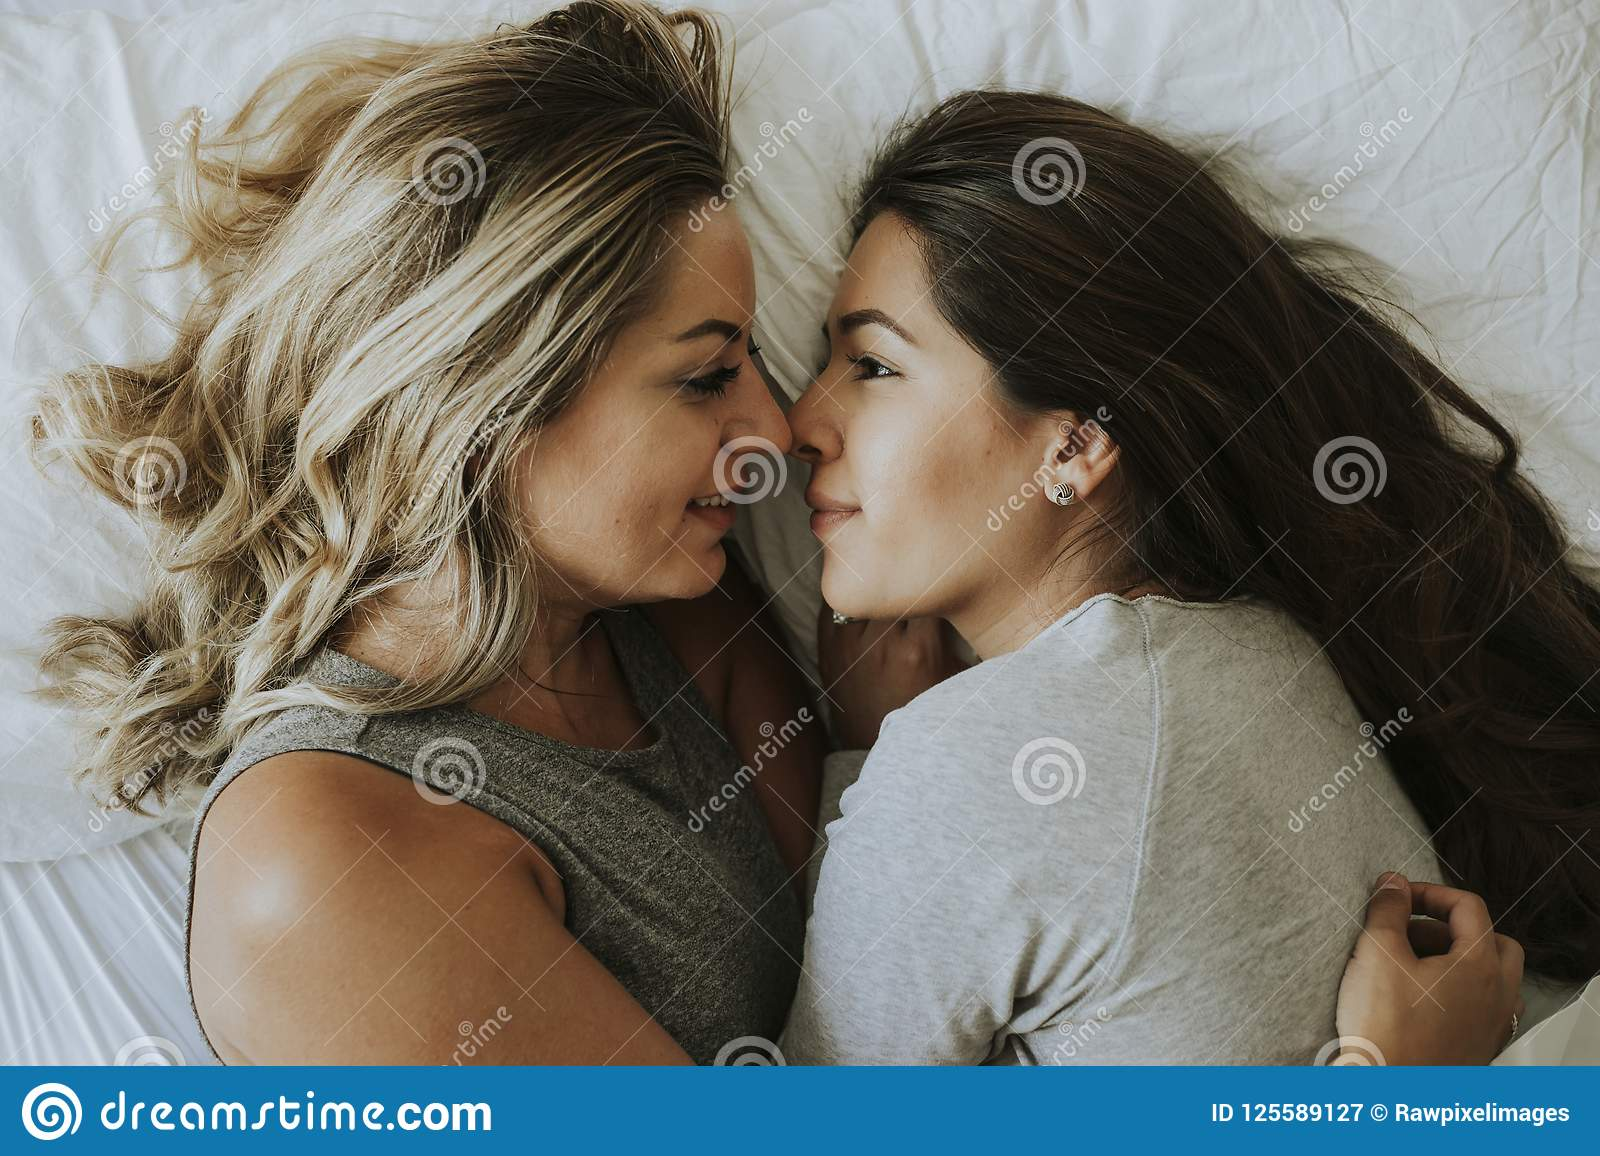 Lesbian in bed together